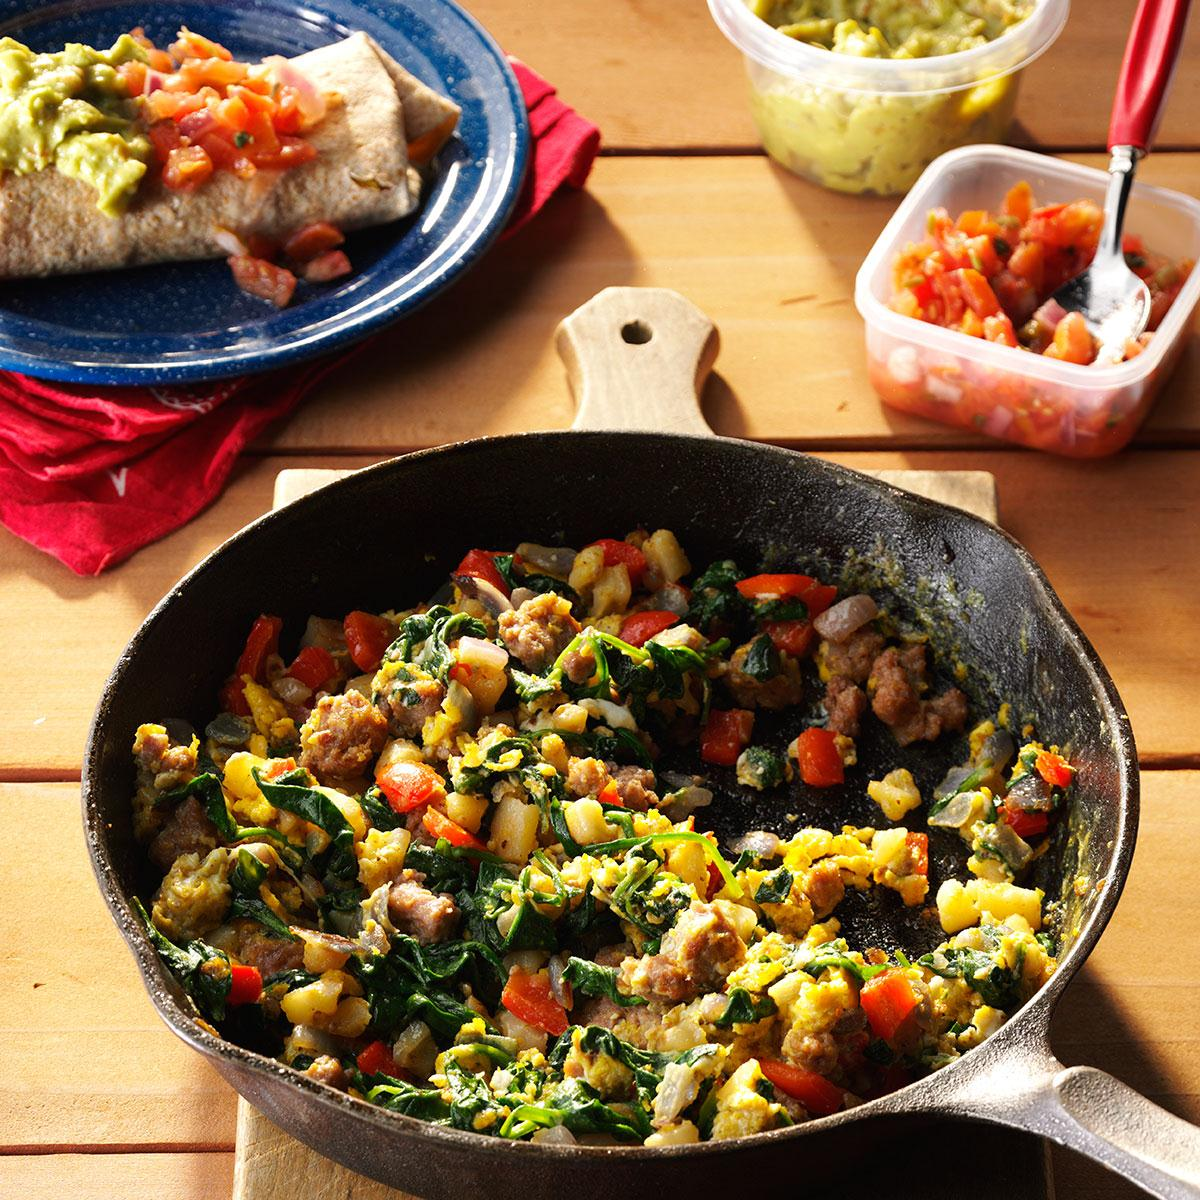 11 Make Ahead Camping Recipes For Easy Meal Planning: Egg & Spinach Breakfast Burritos Recipe